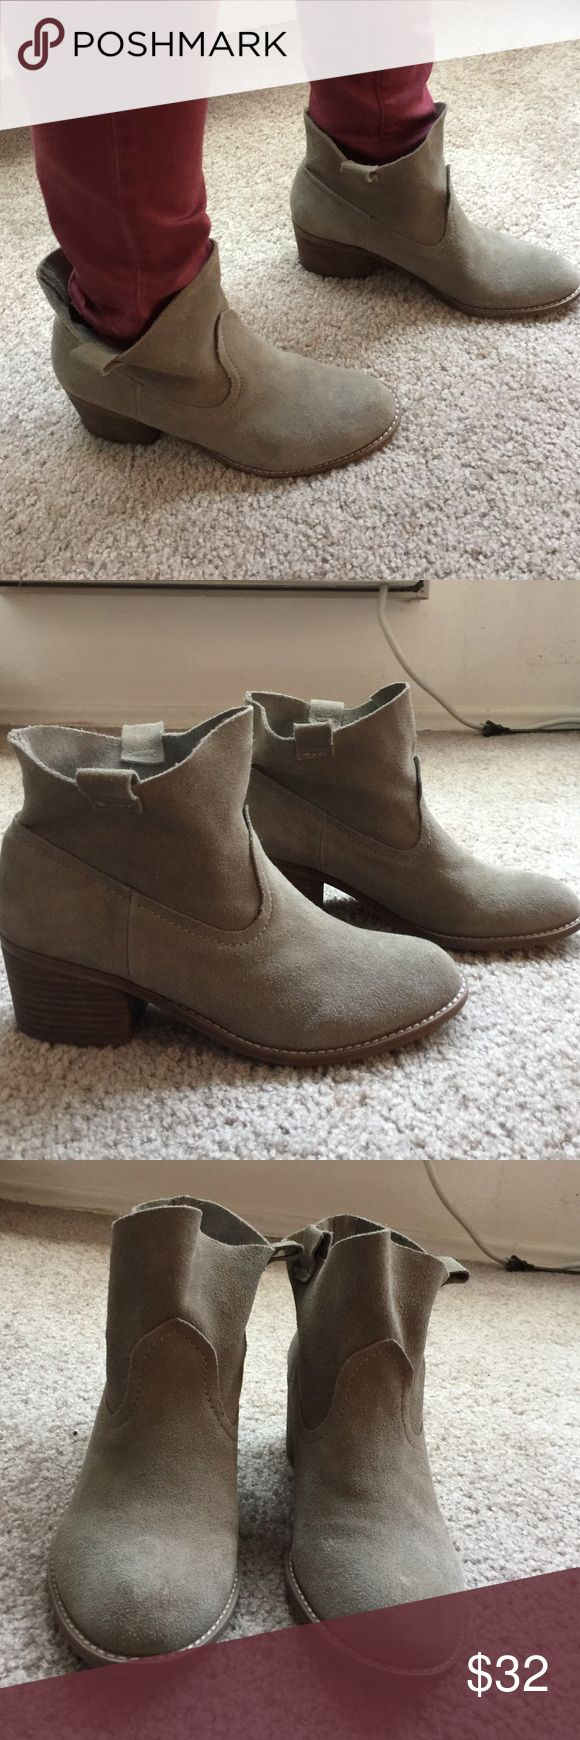 New Carlos Santana taupe suede ankle cowboy boots Size 9 medium Carlos Santana brand stacked heel ankle boots that are a tope color suede material. Authentic and real leather upper. cute boot and comfortable fit. Carlos Santana Shoes Ankle Boots & Booties